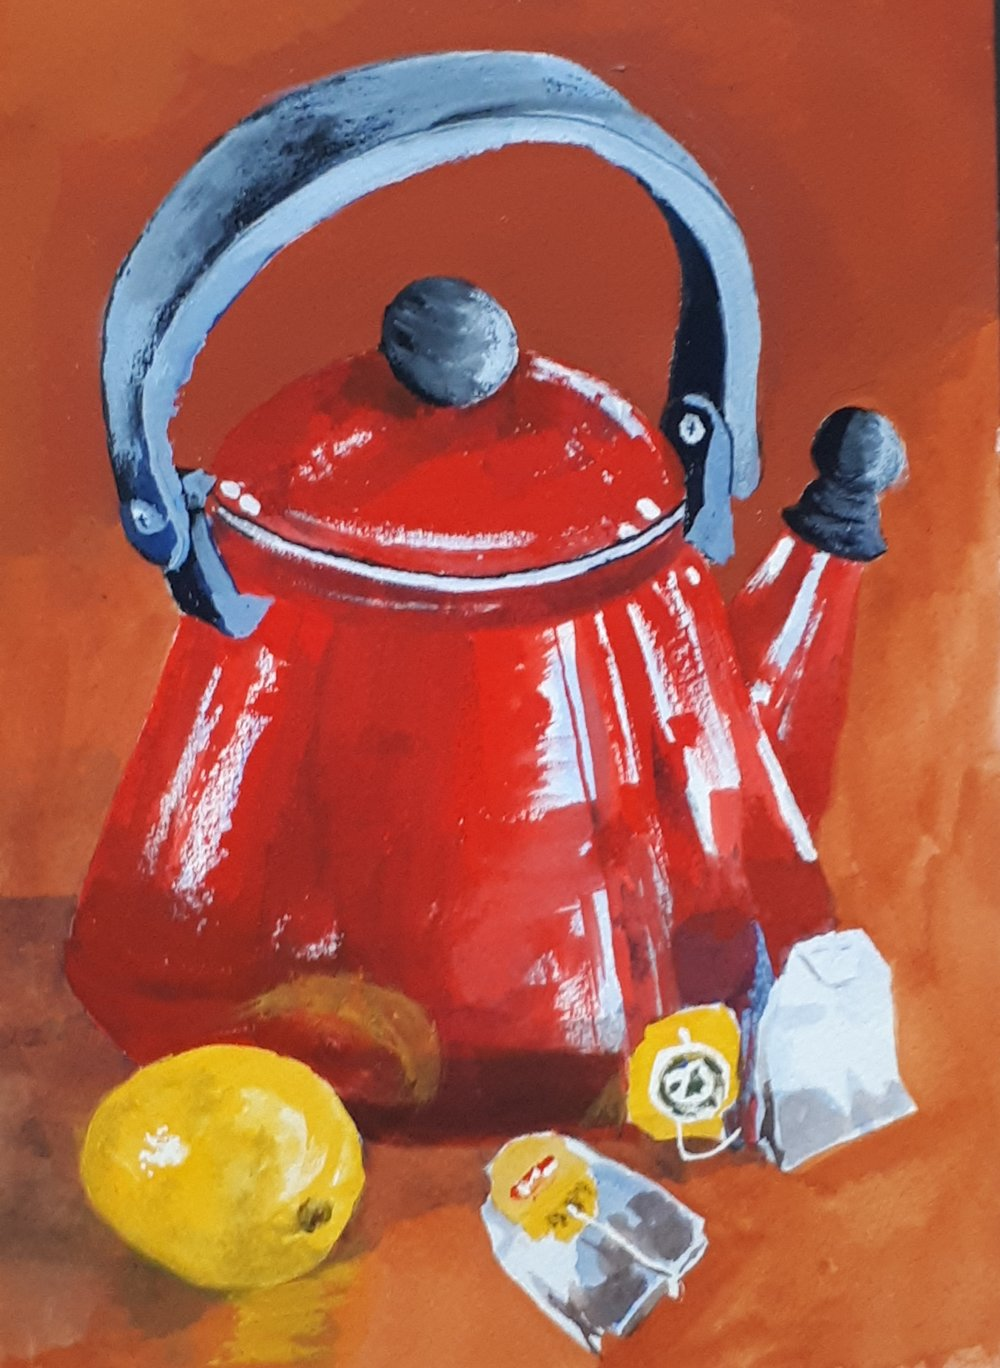 The final painting - red kettle with lemon and Liptons teabags